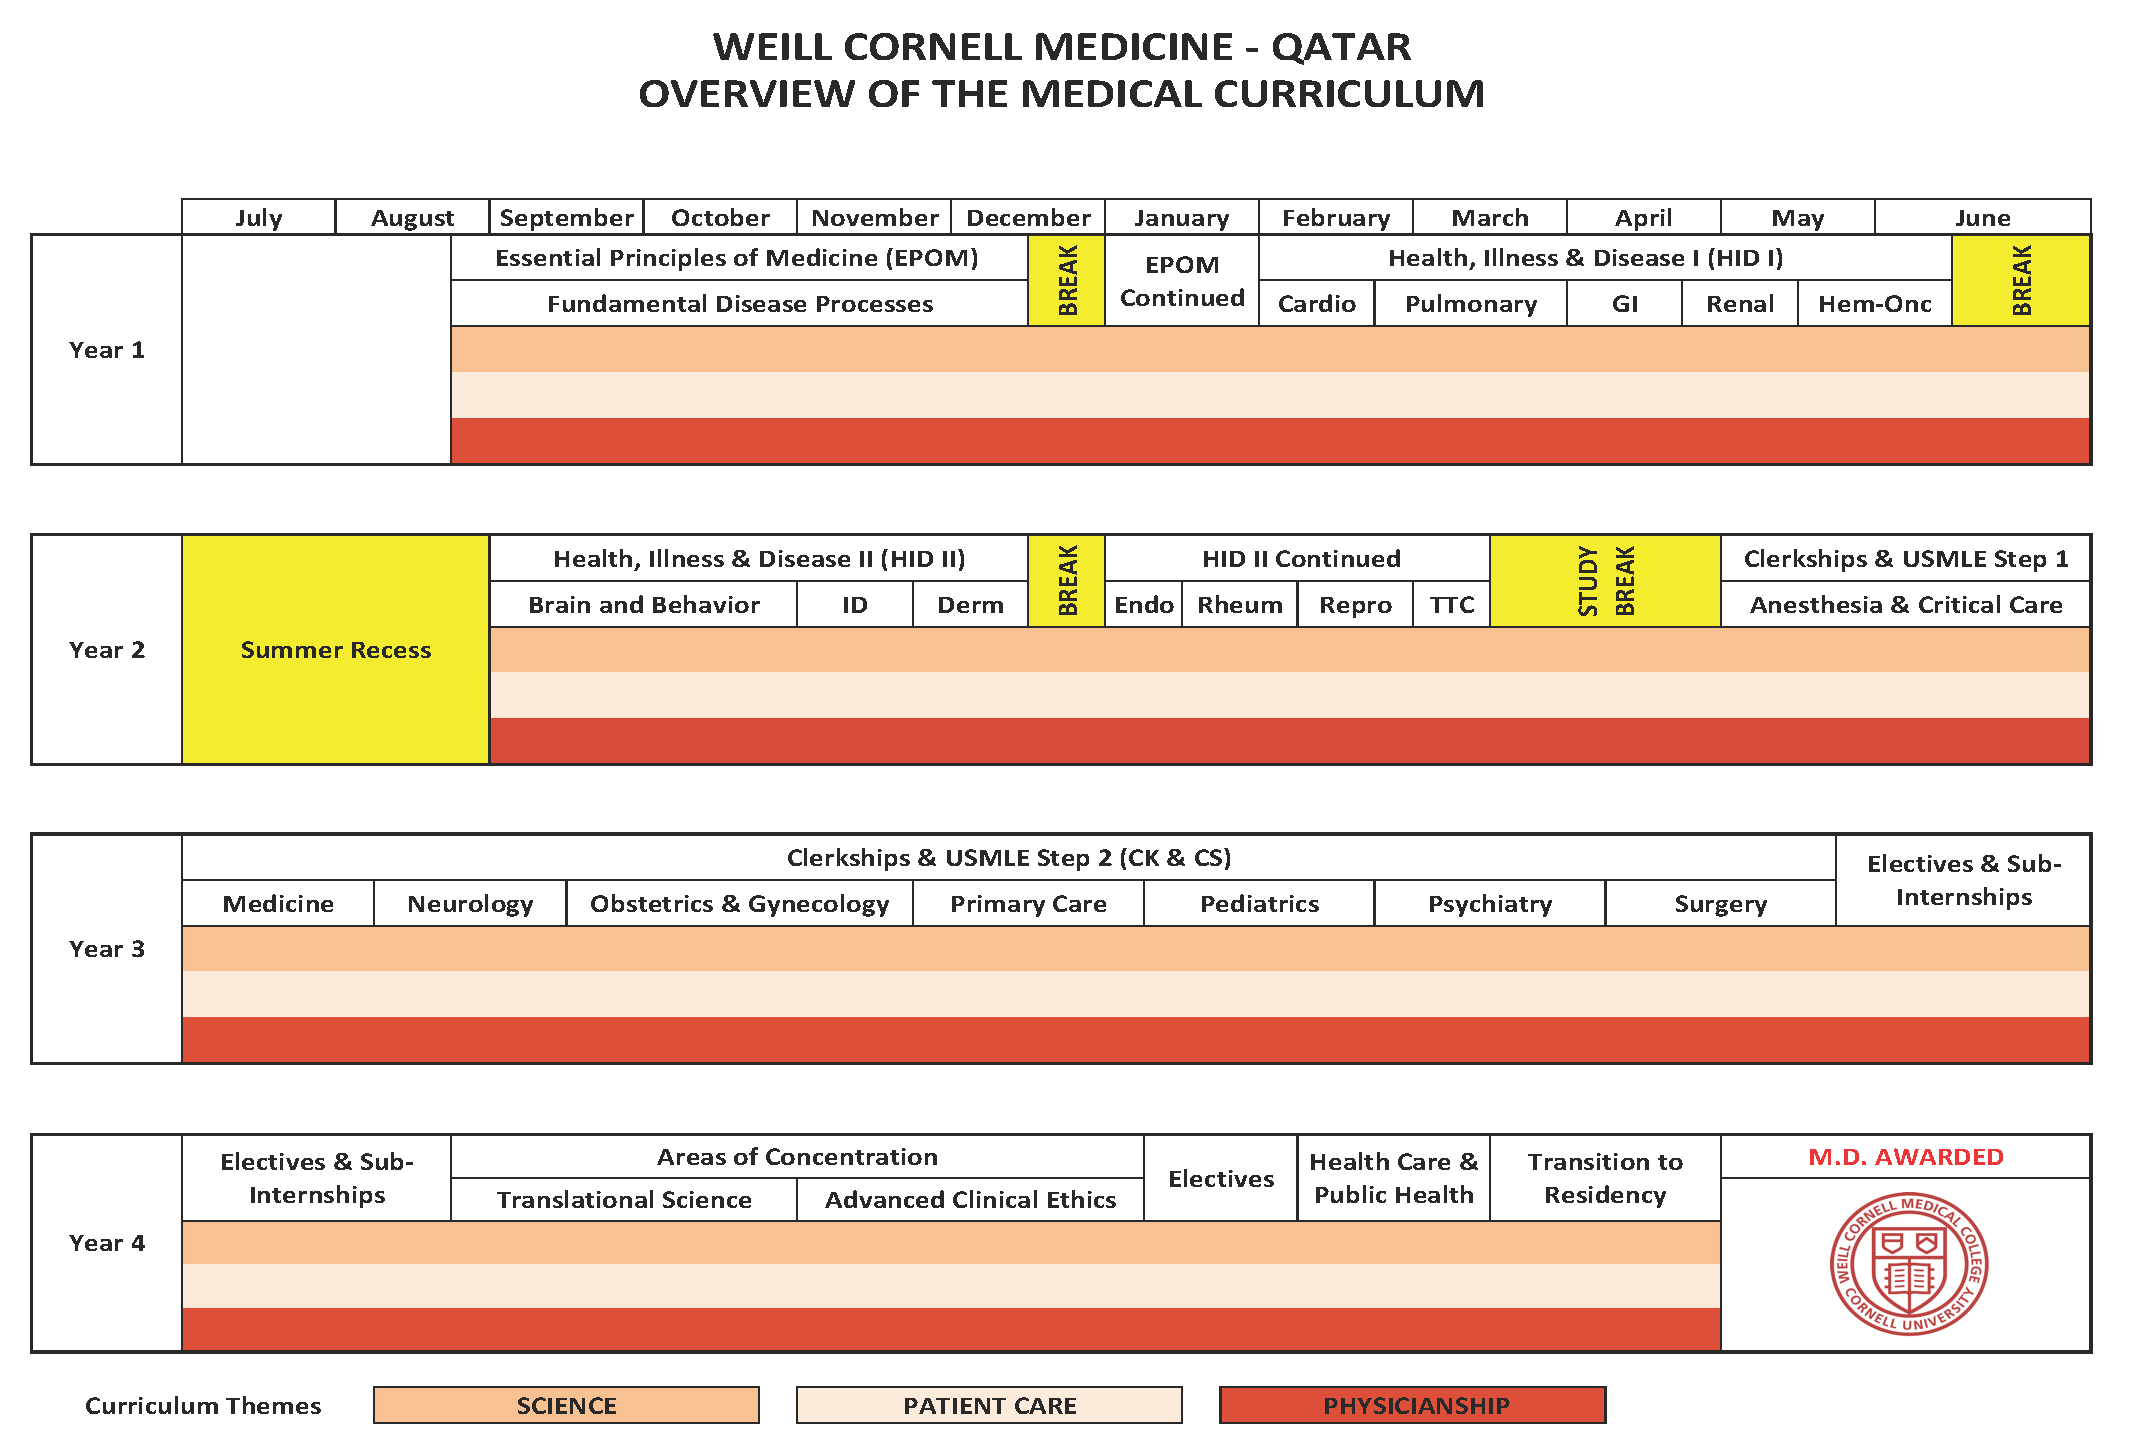 WCM-Q New Curriculum Chart 14 August 2018_Page_1